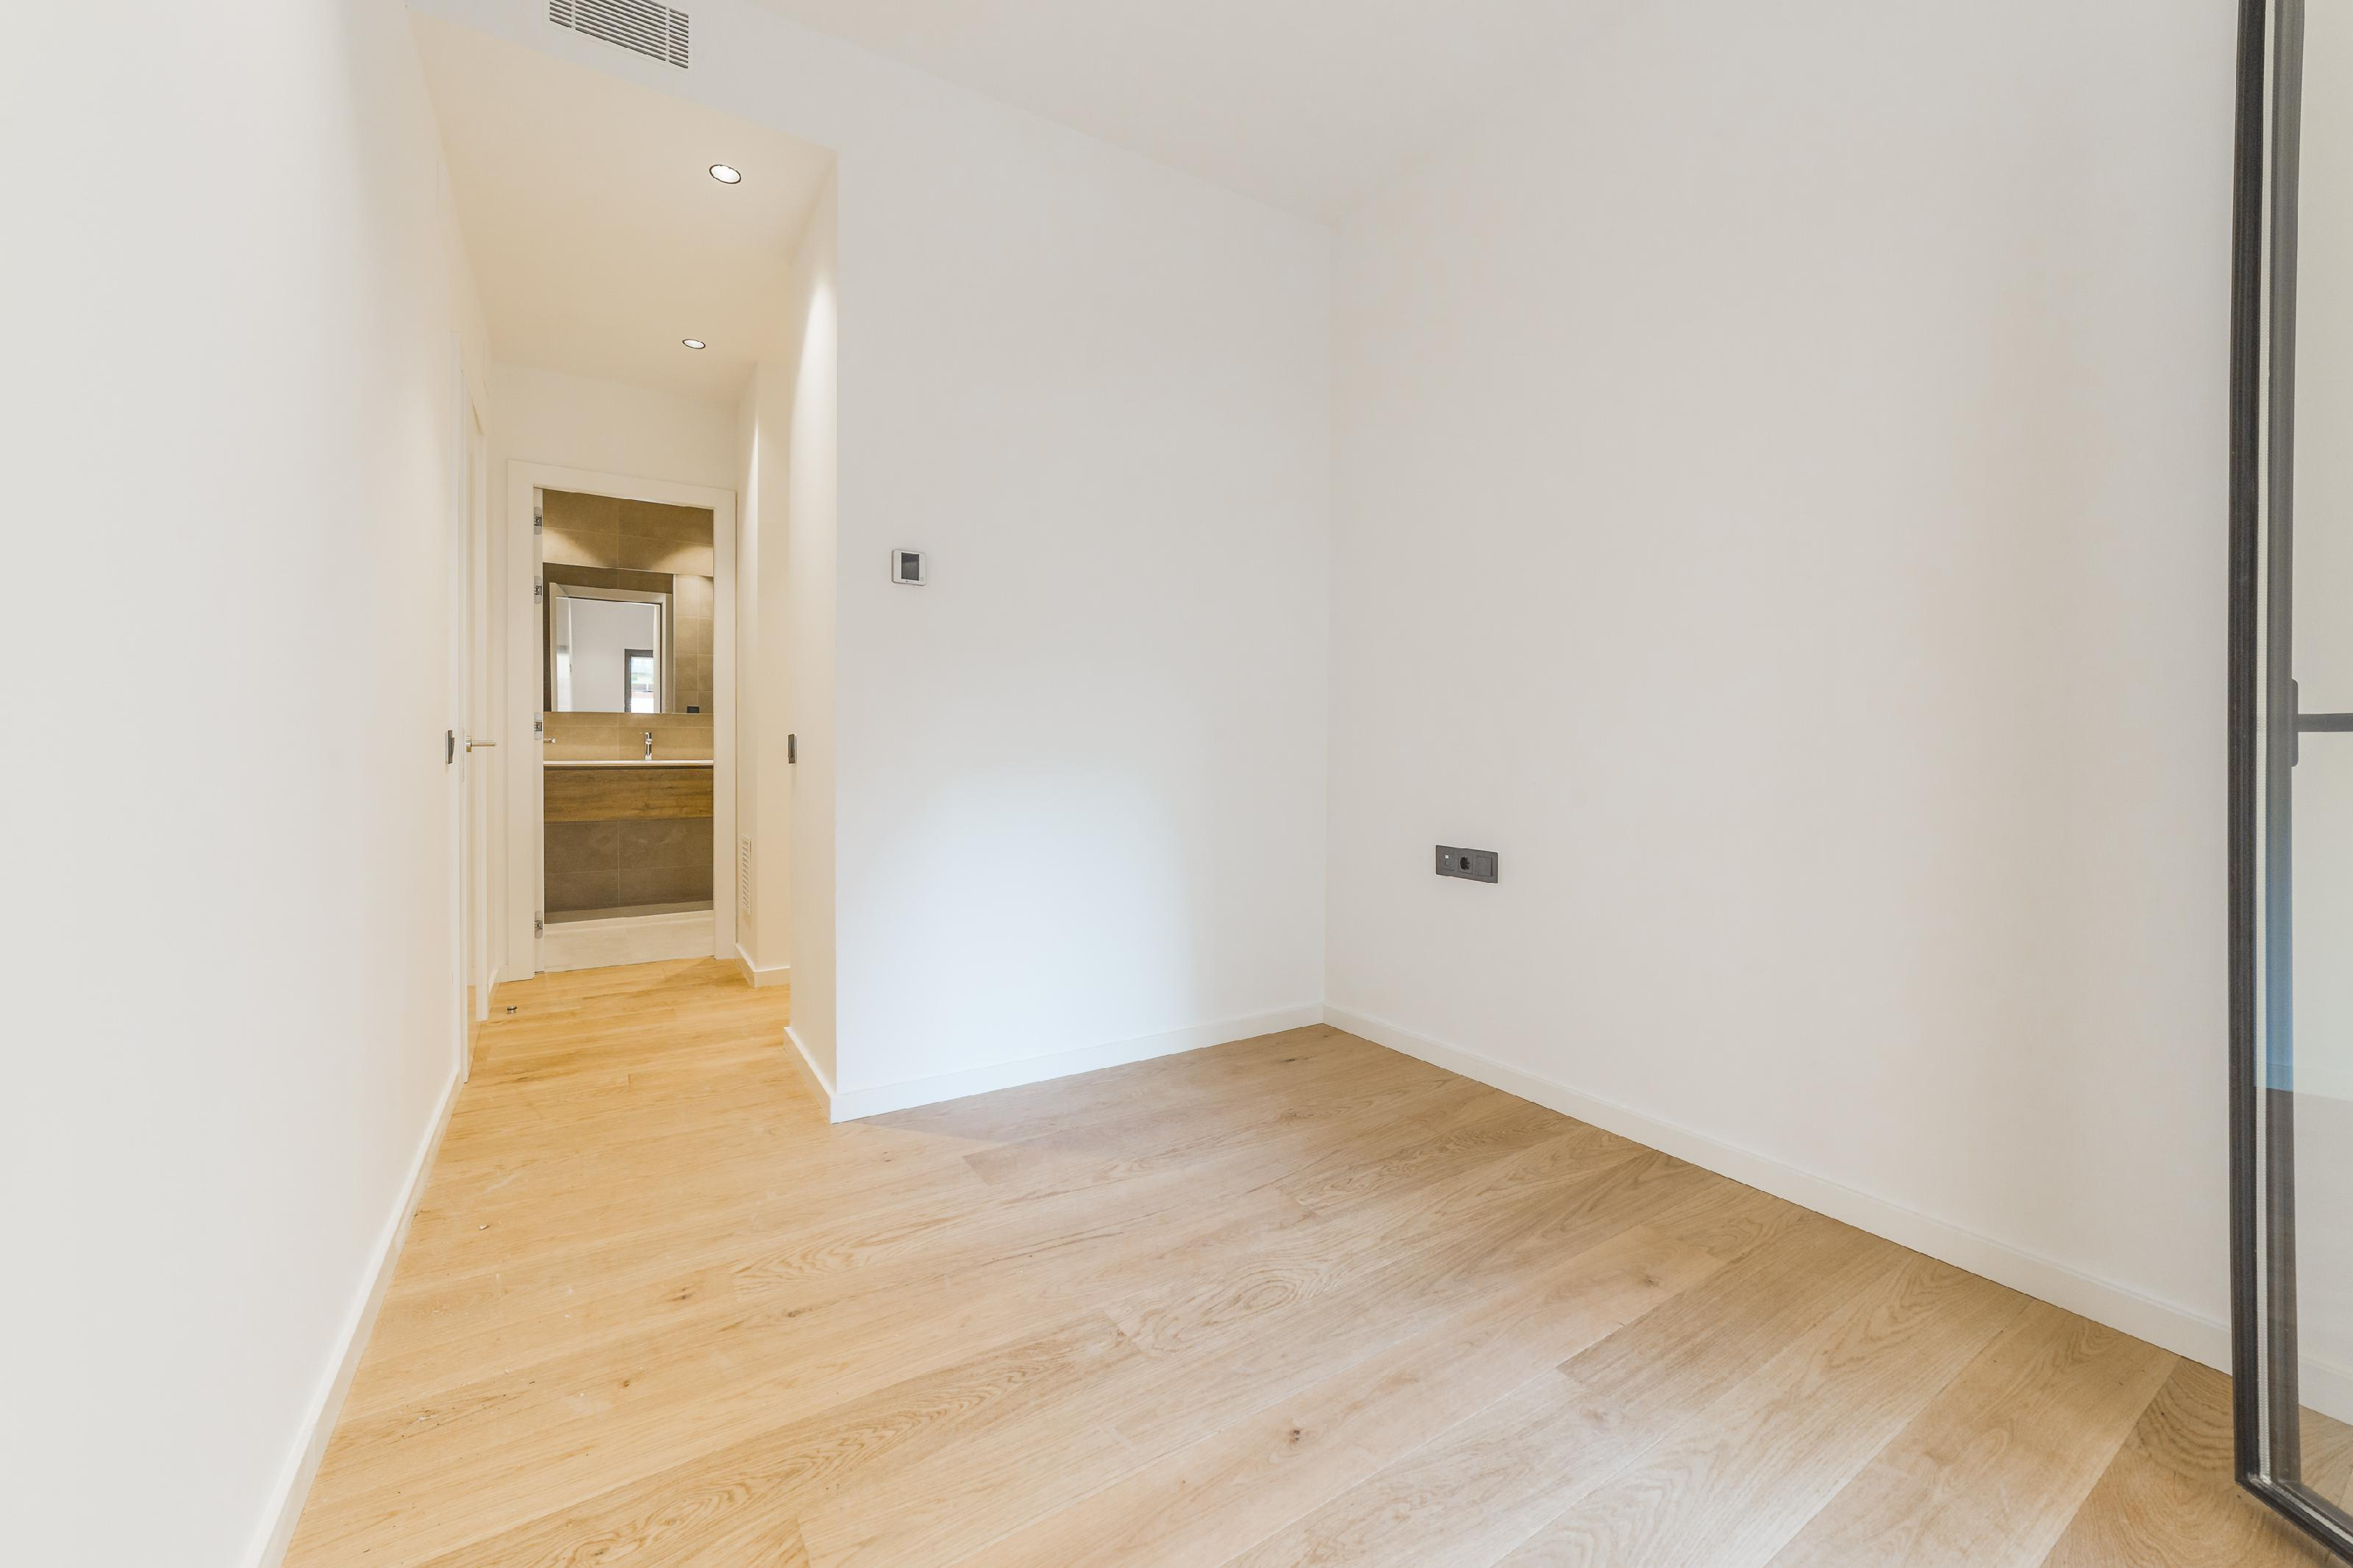 182176 Apartment for sale in Eixample, Old Left Eixample 16